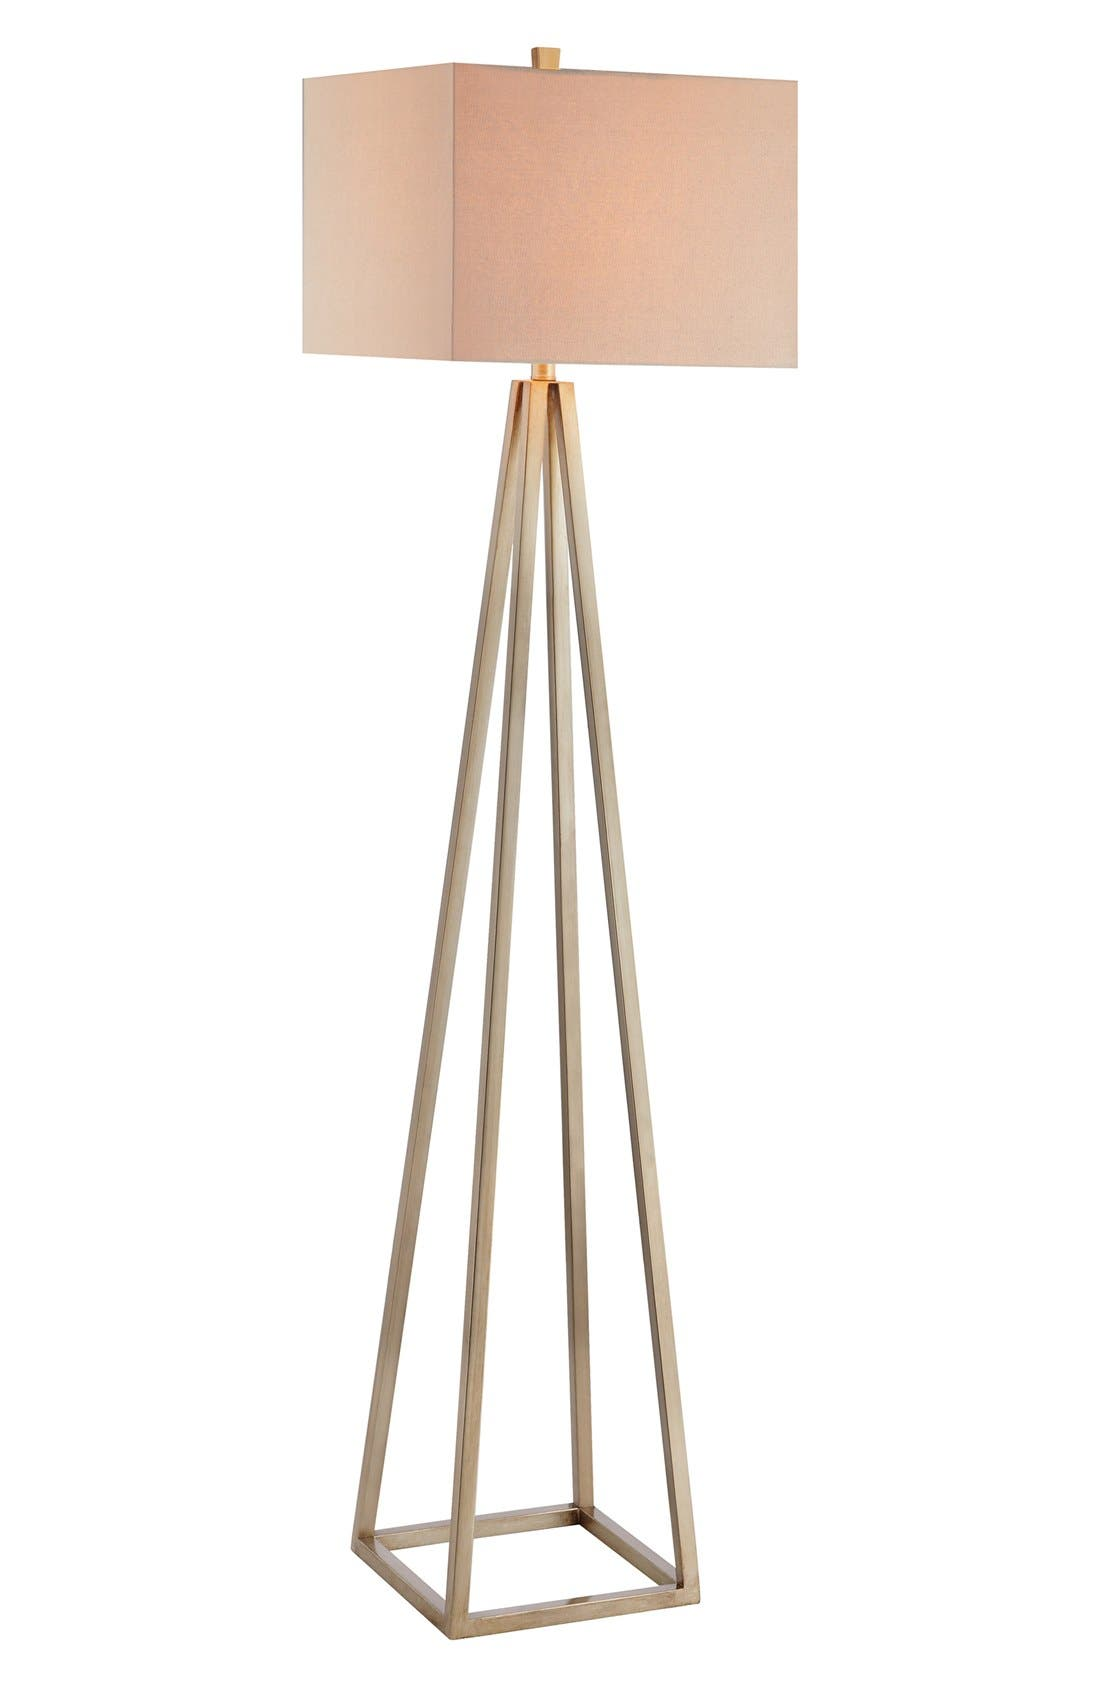 Open Caged Metal Floor Lamp,                             Main thumbnail 1, color,                             710